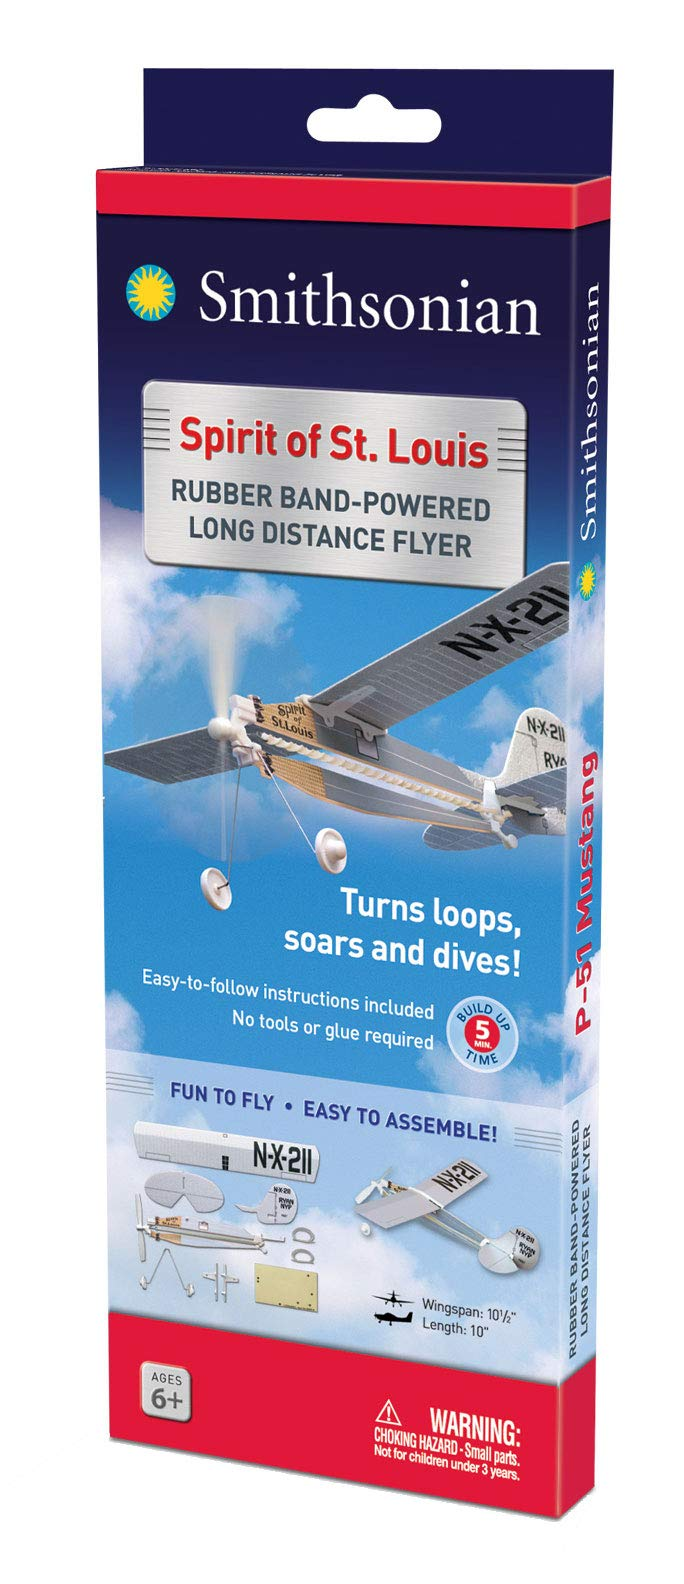 Smithsonian Rubber-Band-Powered Flyers - (Set of 4) by Smithsonian (Image #5)